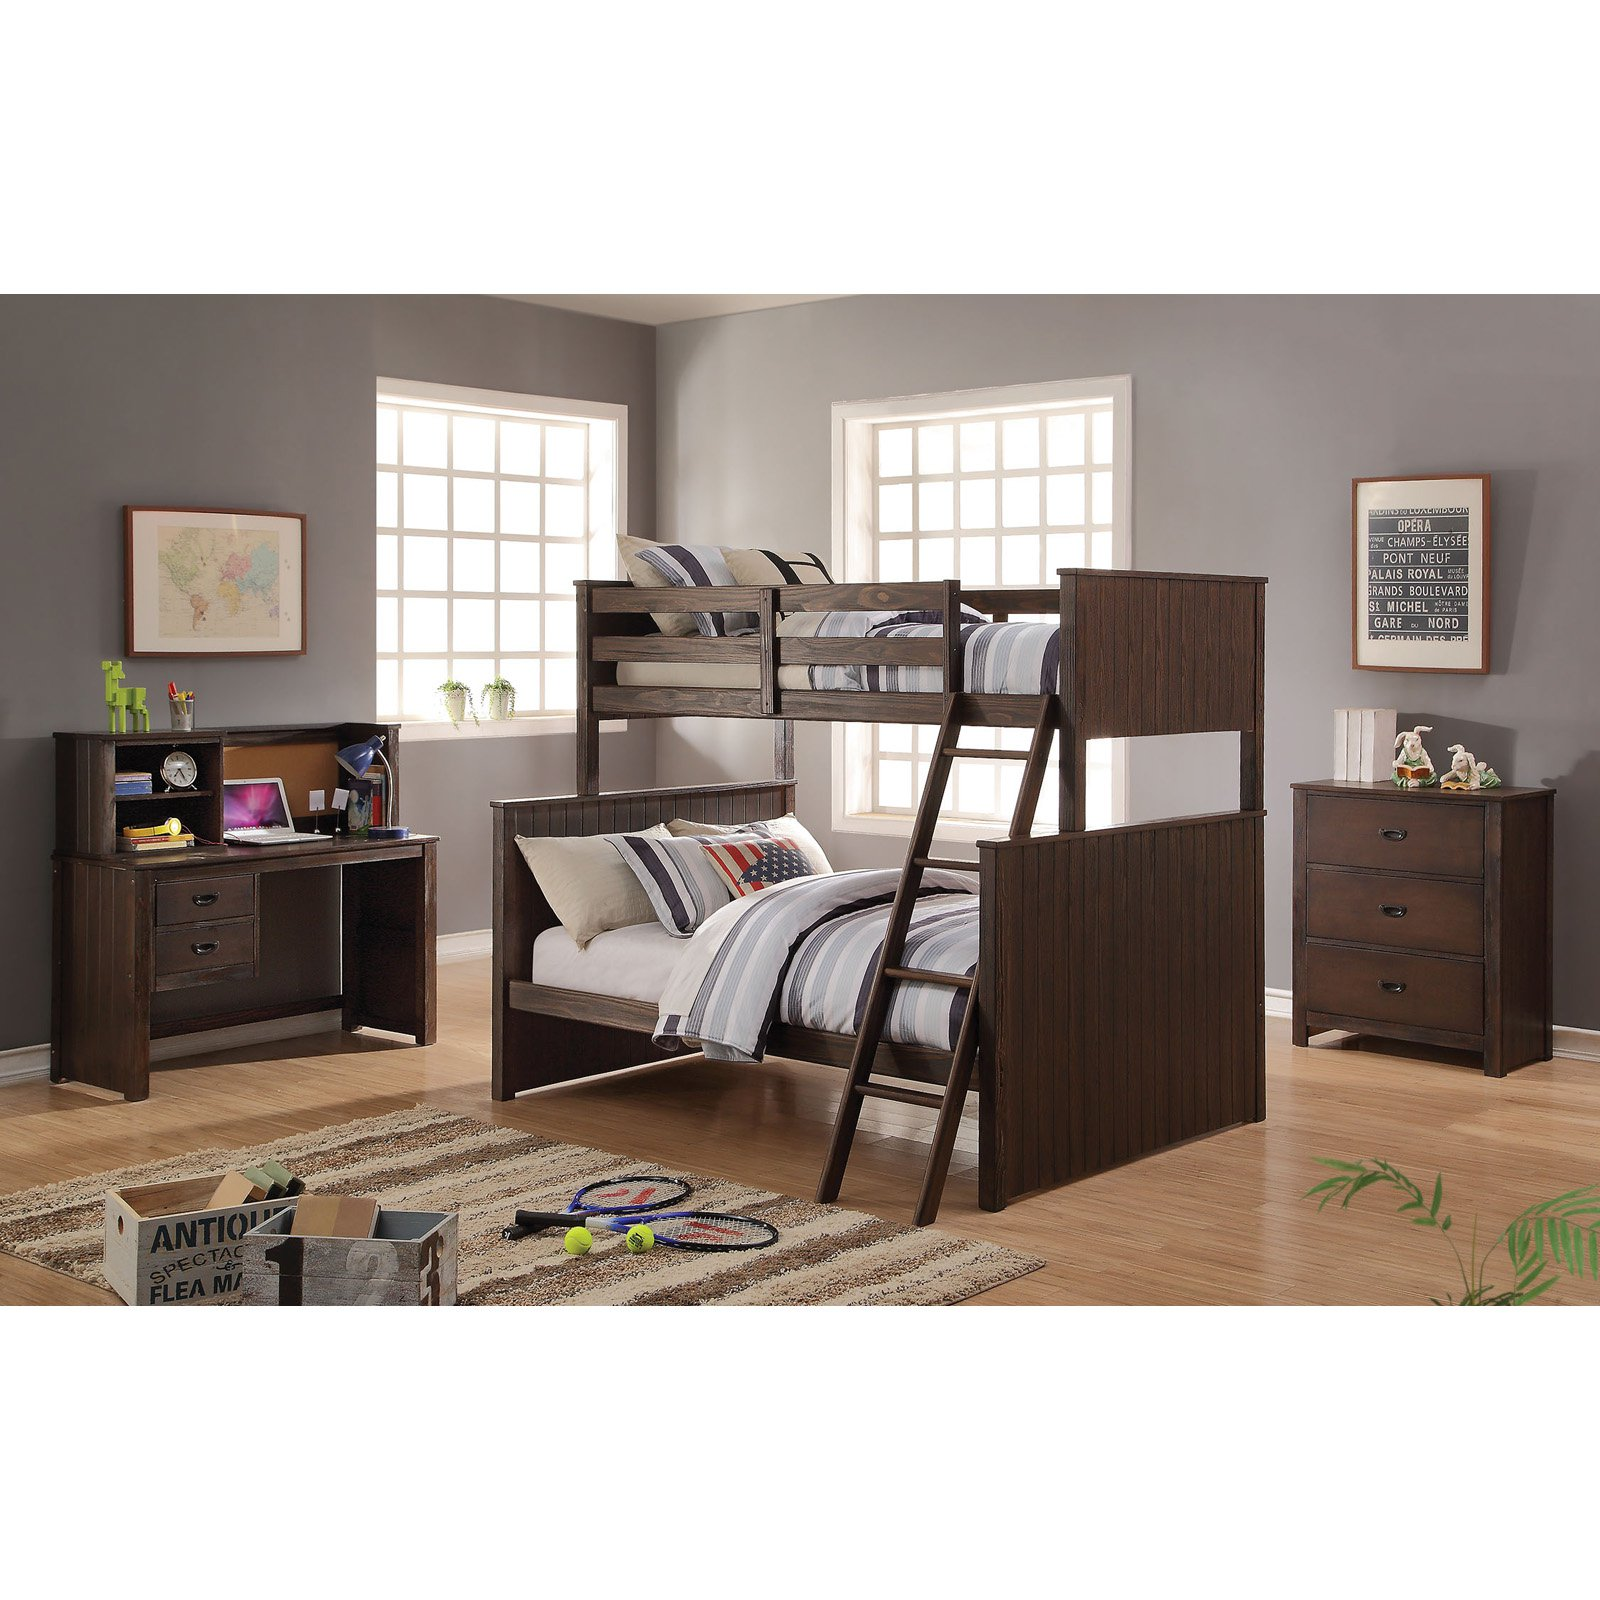 Acme Furniture Hector Twin Over Full Bunk Bed Antique Charcoal Brown by Acme Furniture